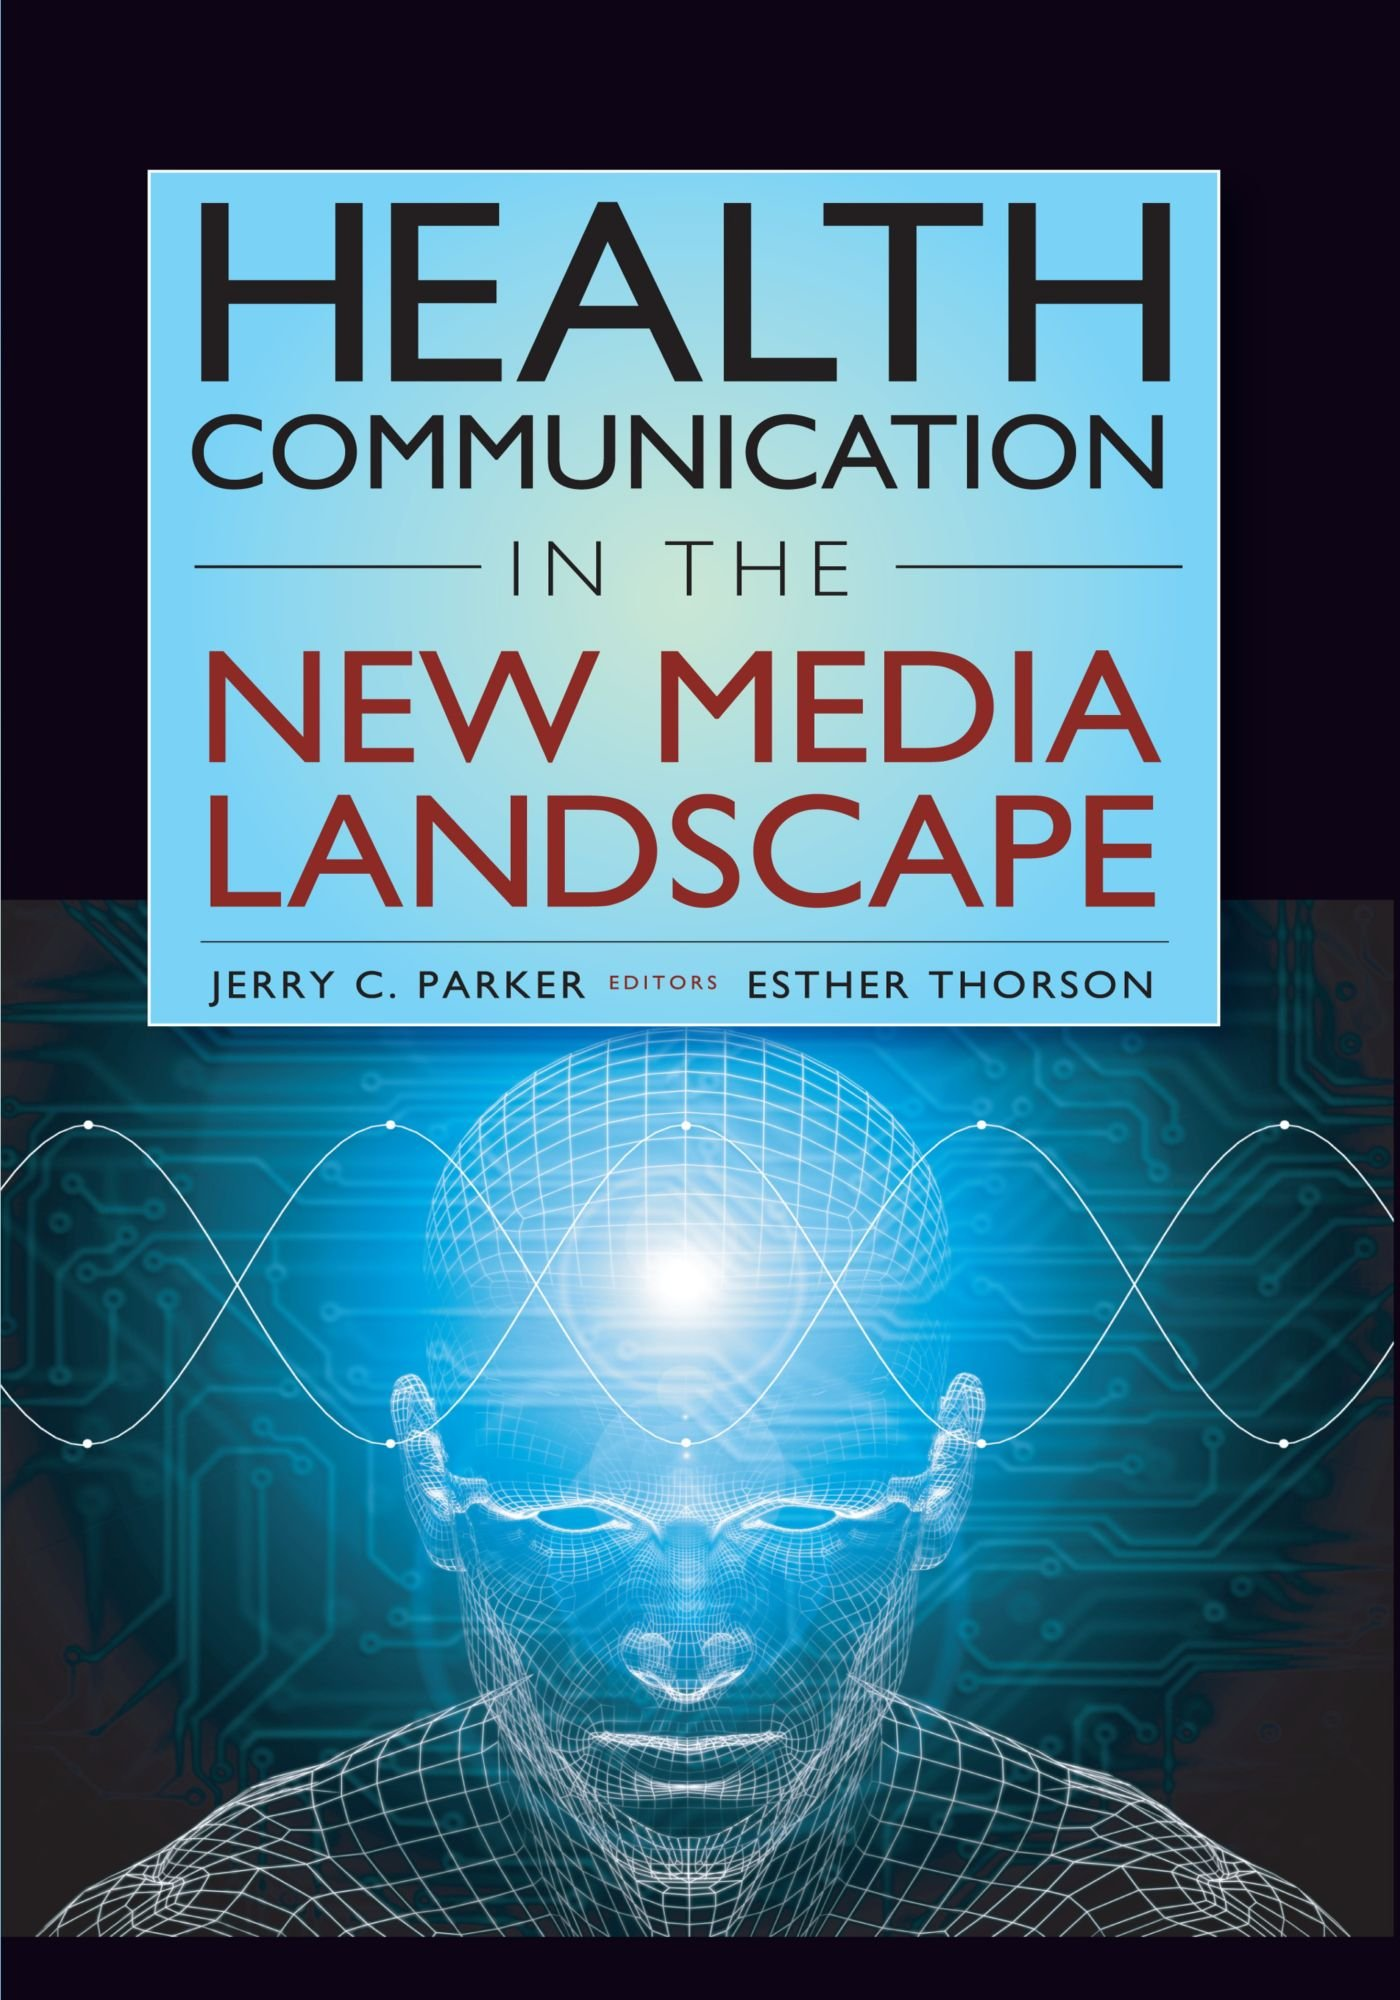 Health Communication in the New Media Landscape